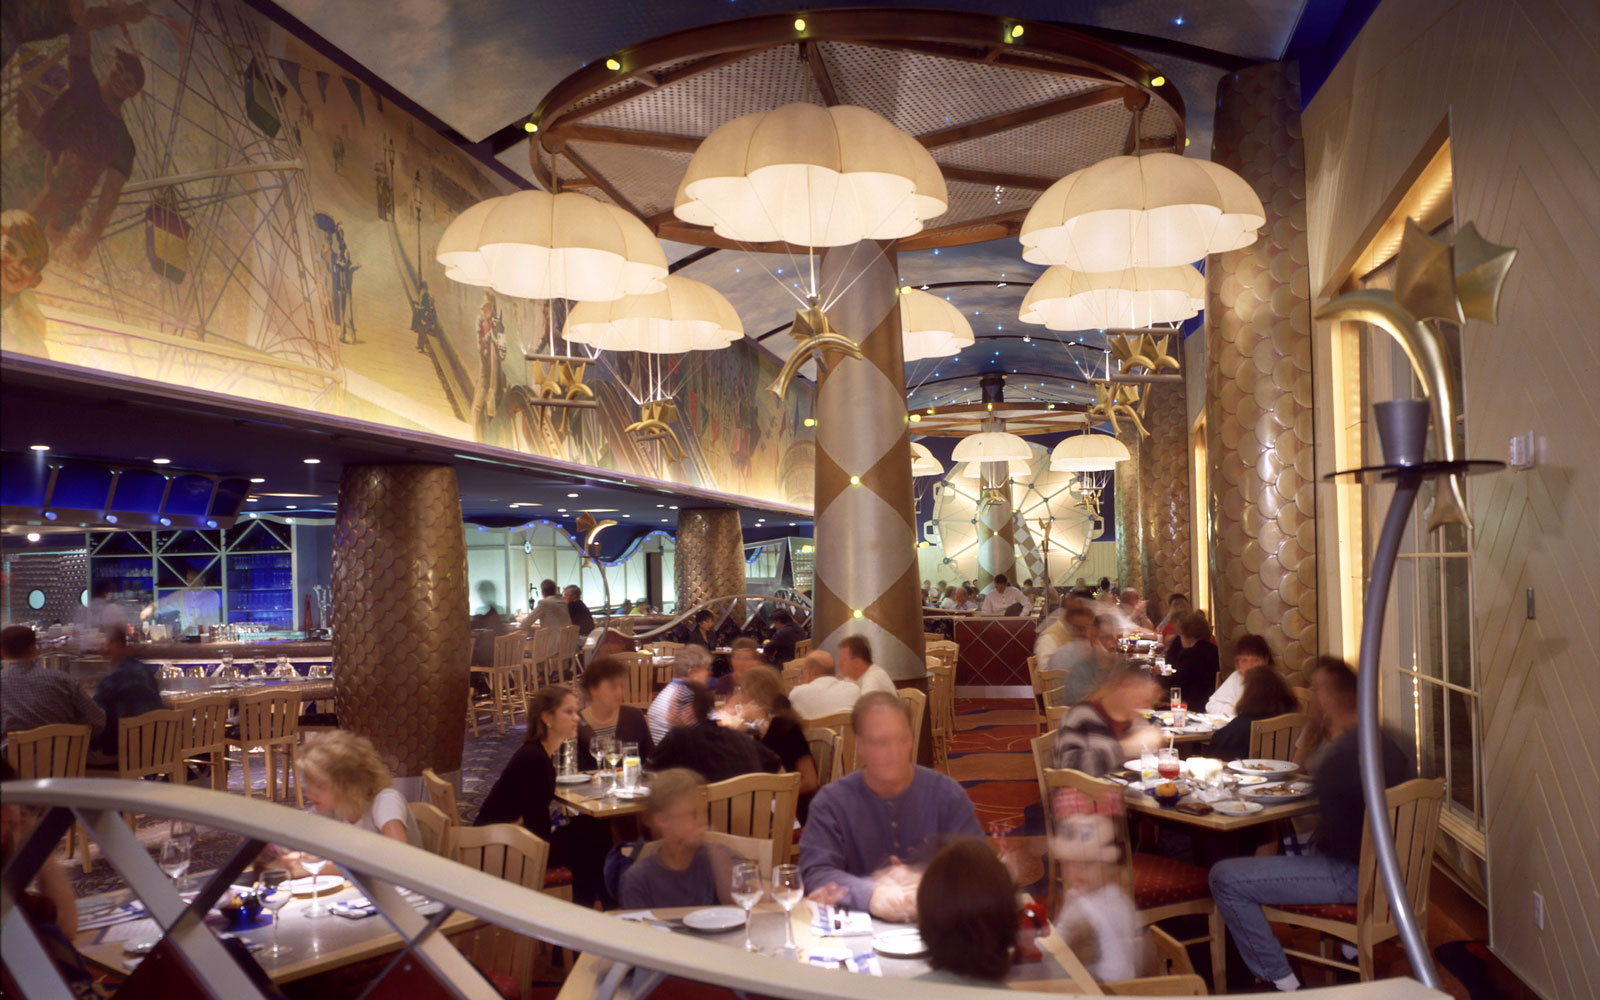 Flying Fish Café, Disney's BoardWalk